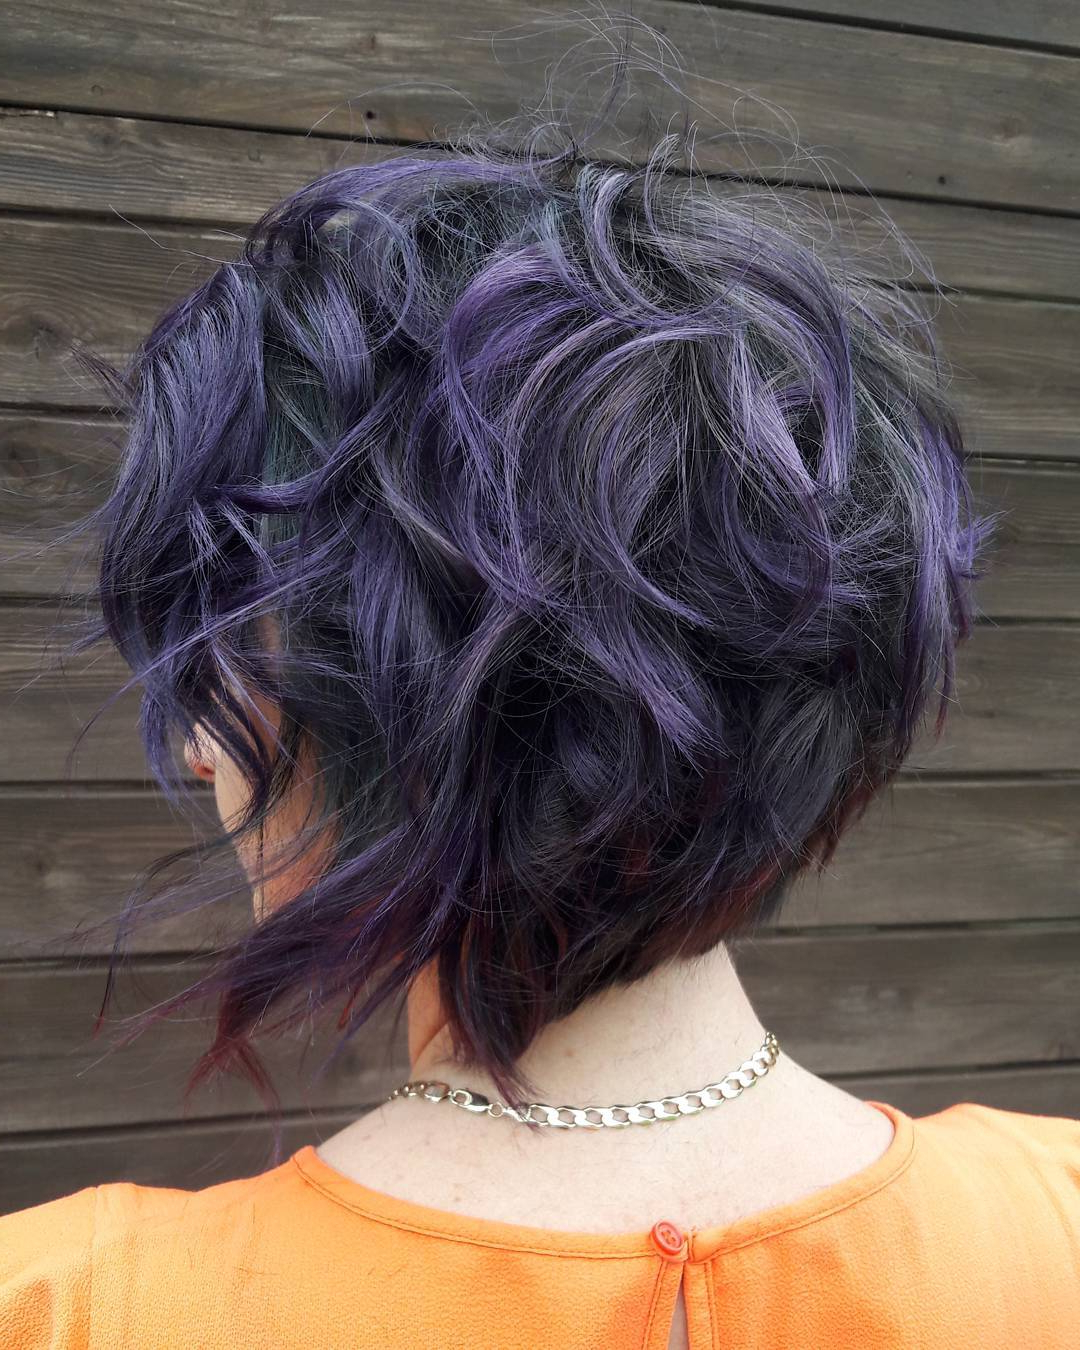 10 Amazing Short Hairstyles For Free Spirited Women! Short Haircuts Within Purple And Black Short Hairstyles (View 25 of 25)